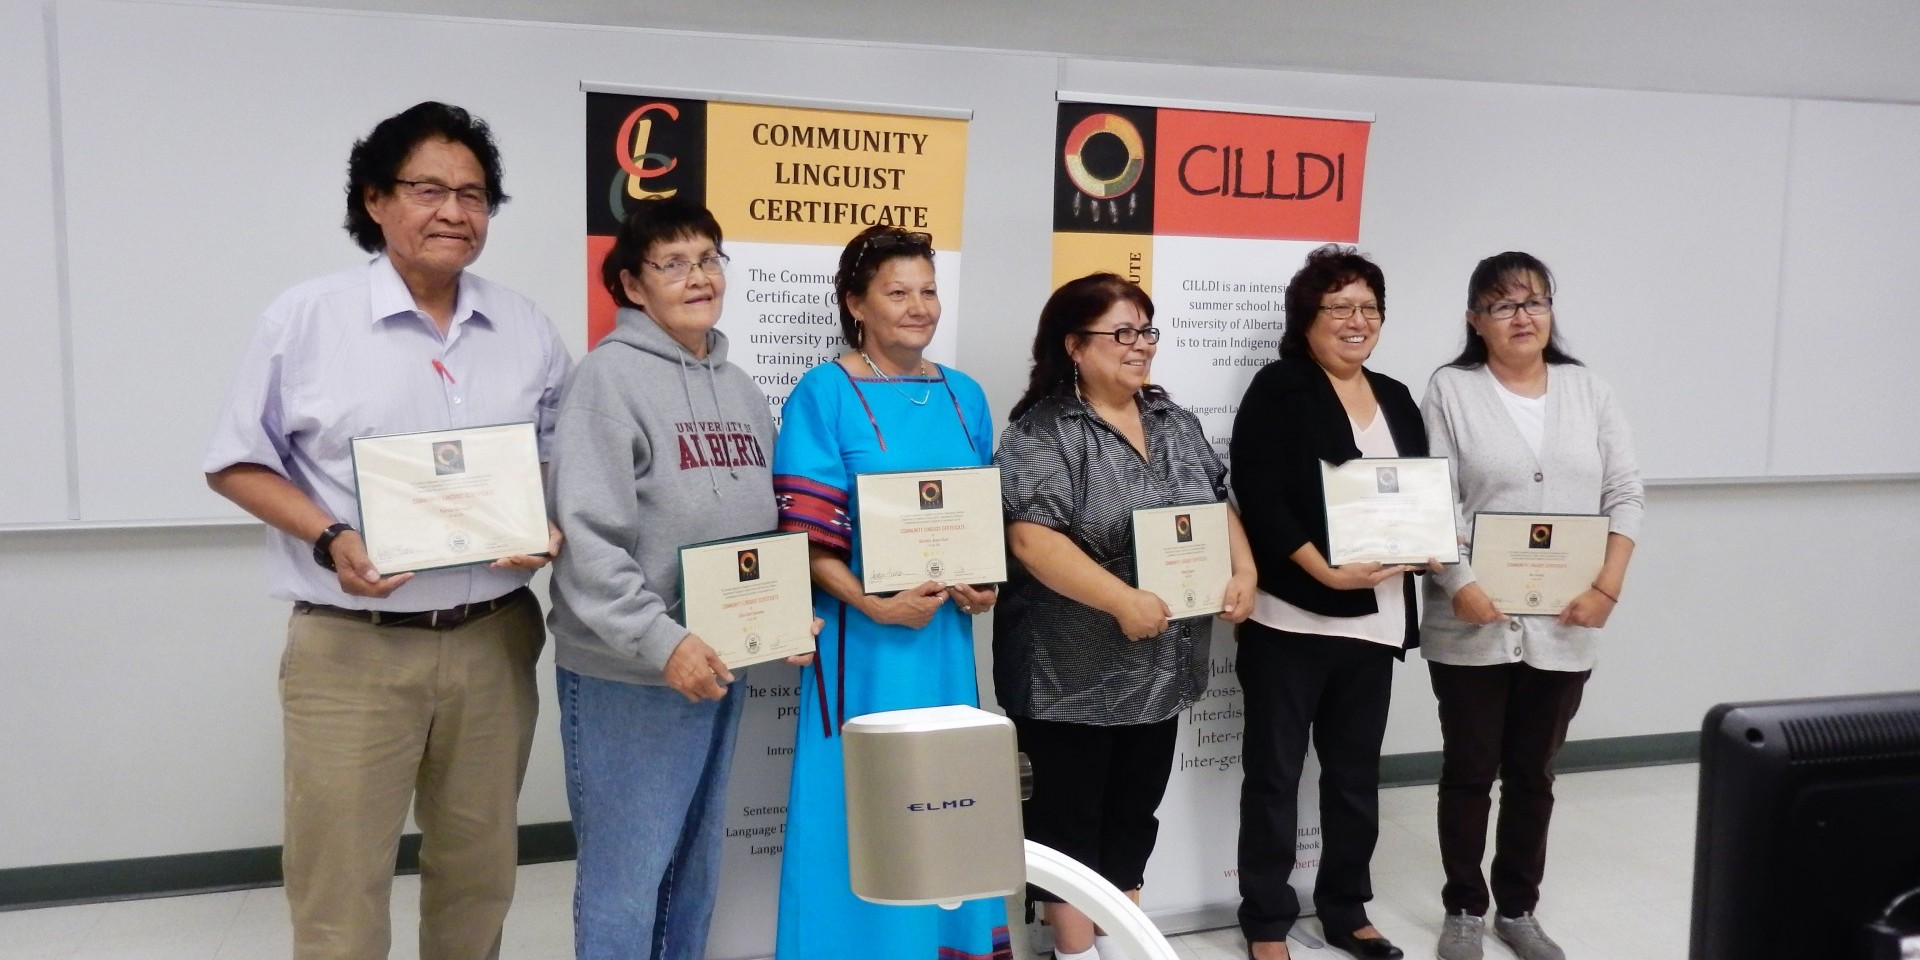 The latest group of students in CILLDI's Summer Program show off their community linguist certificates.